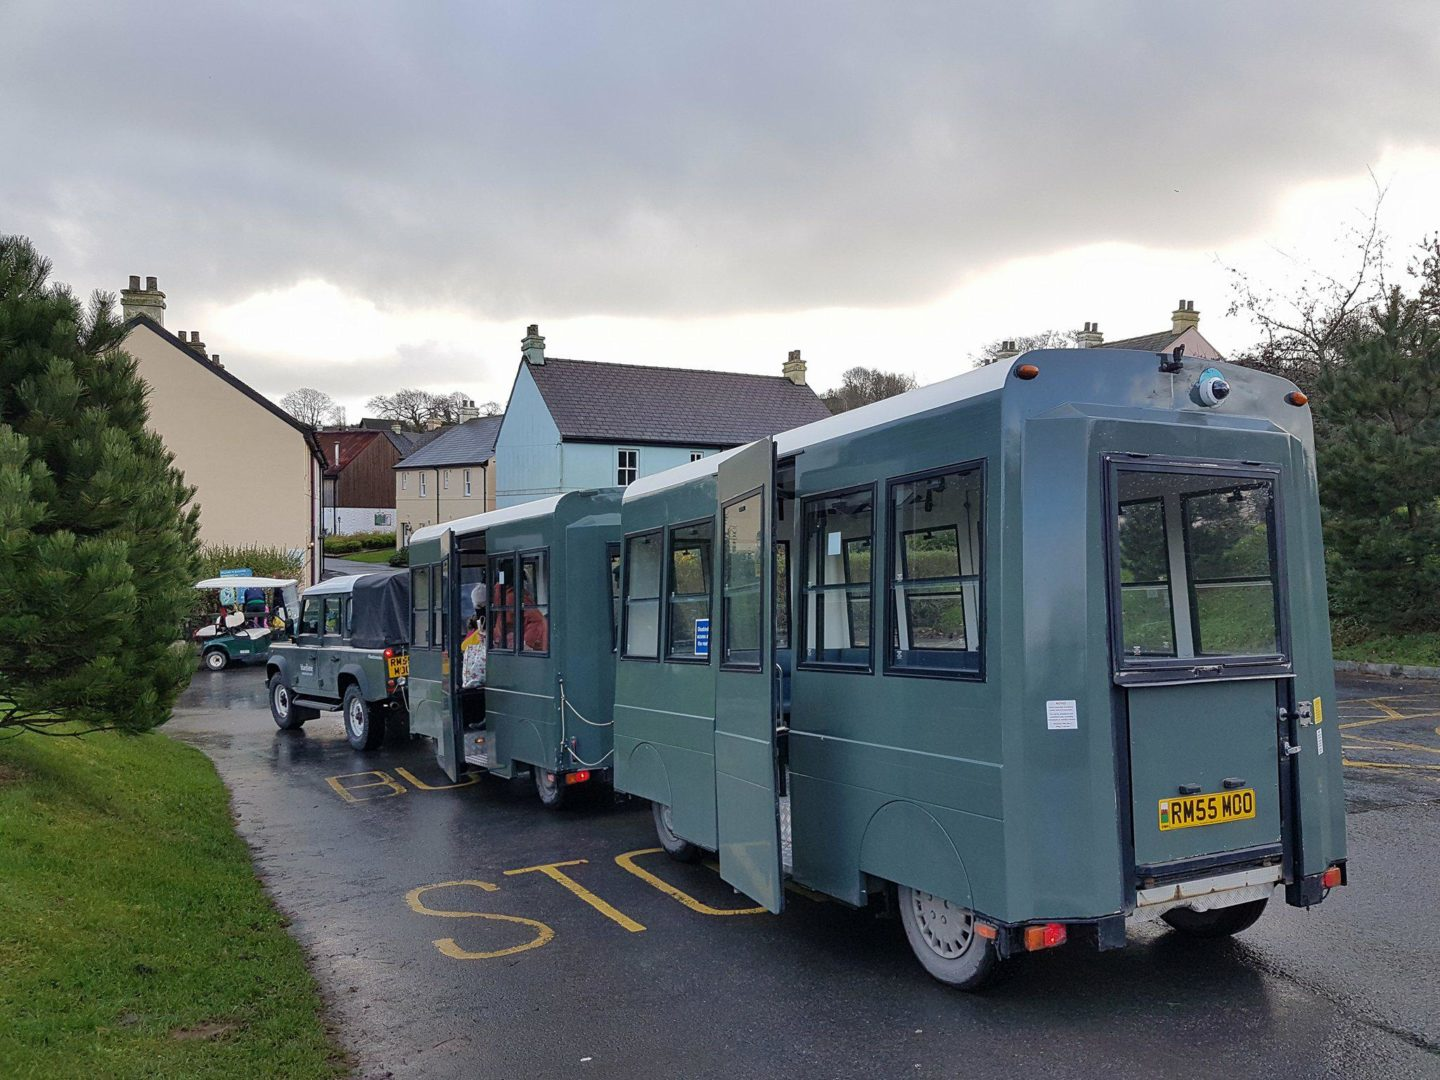 Land Rover train, Bluestone Wales